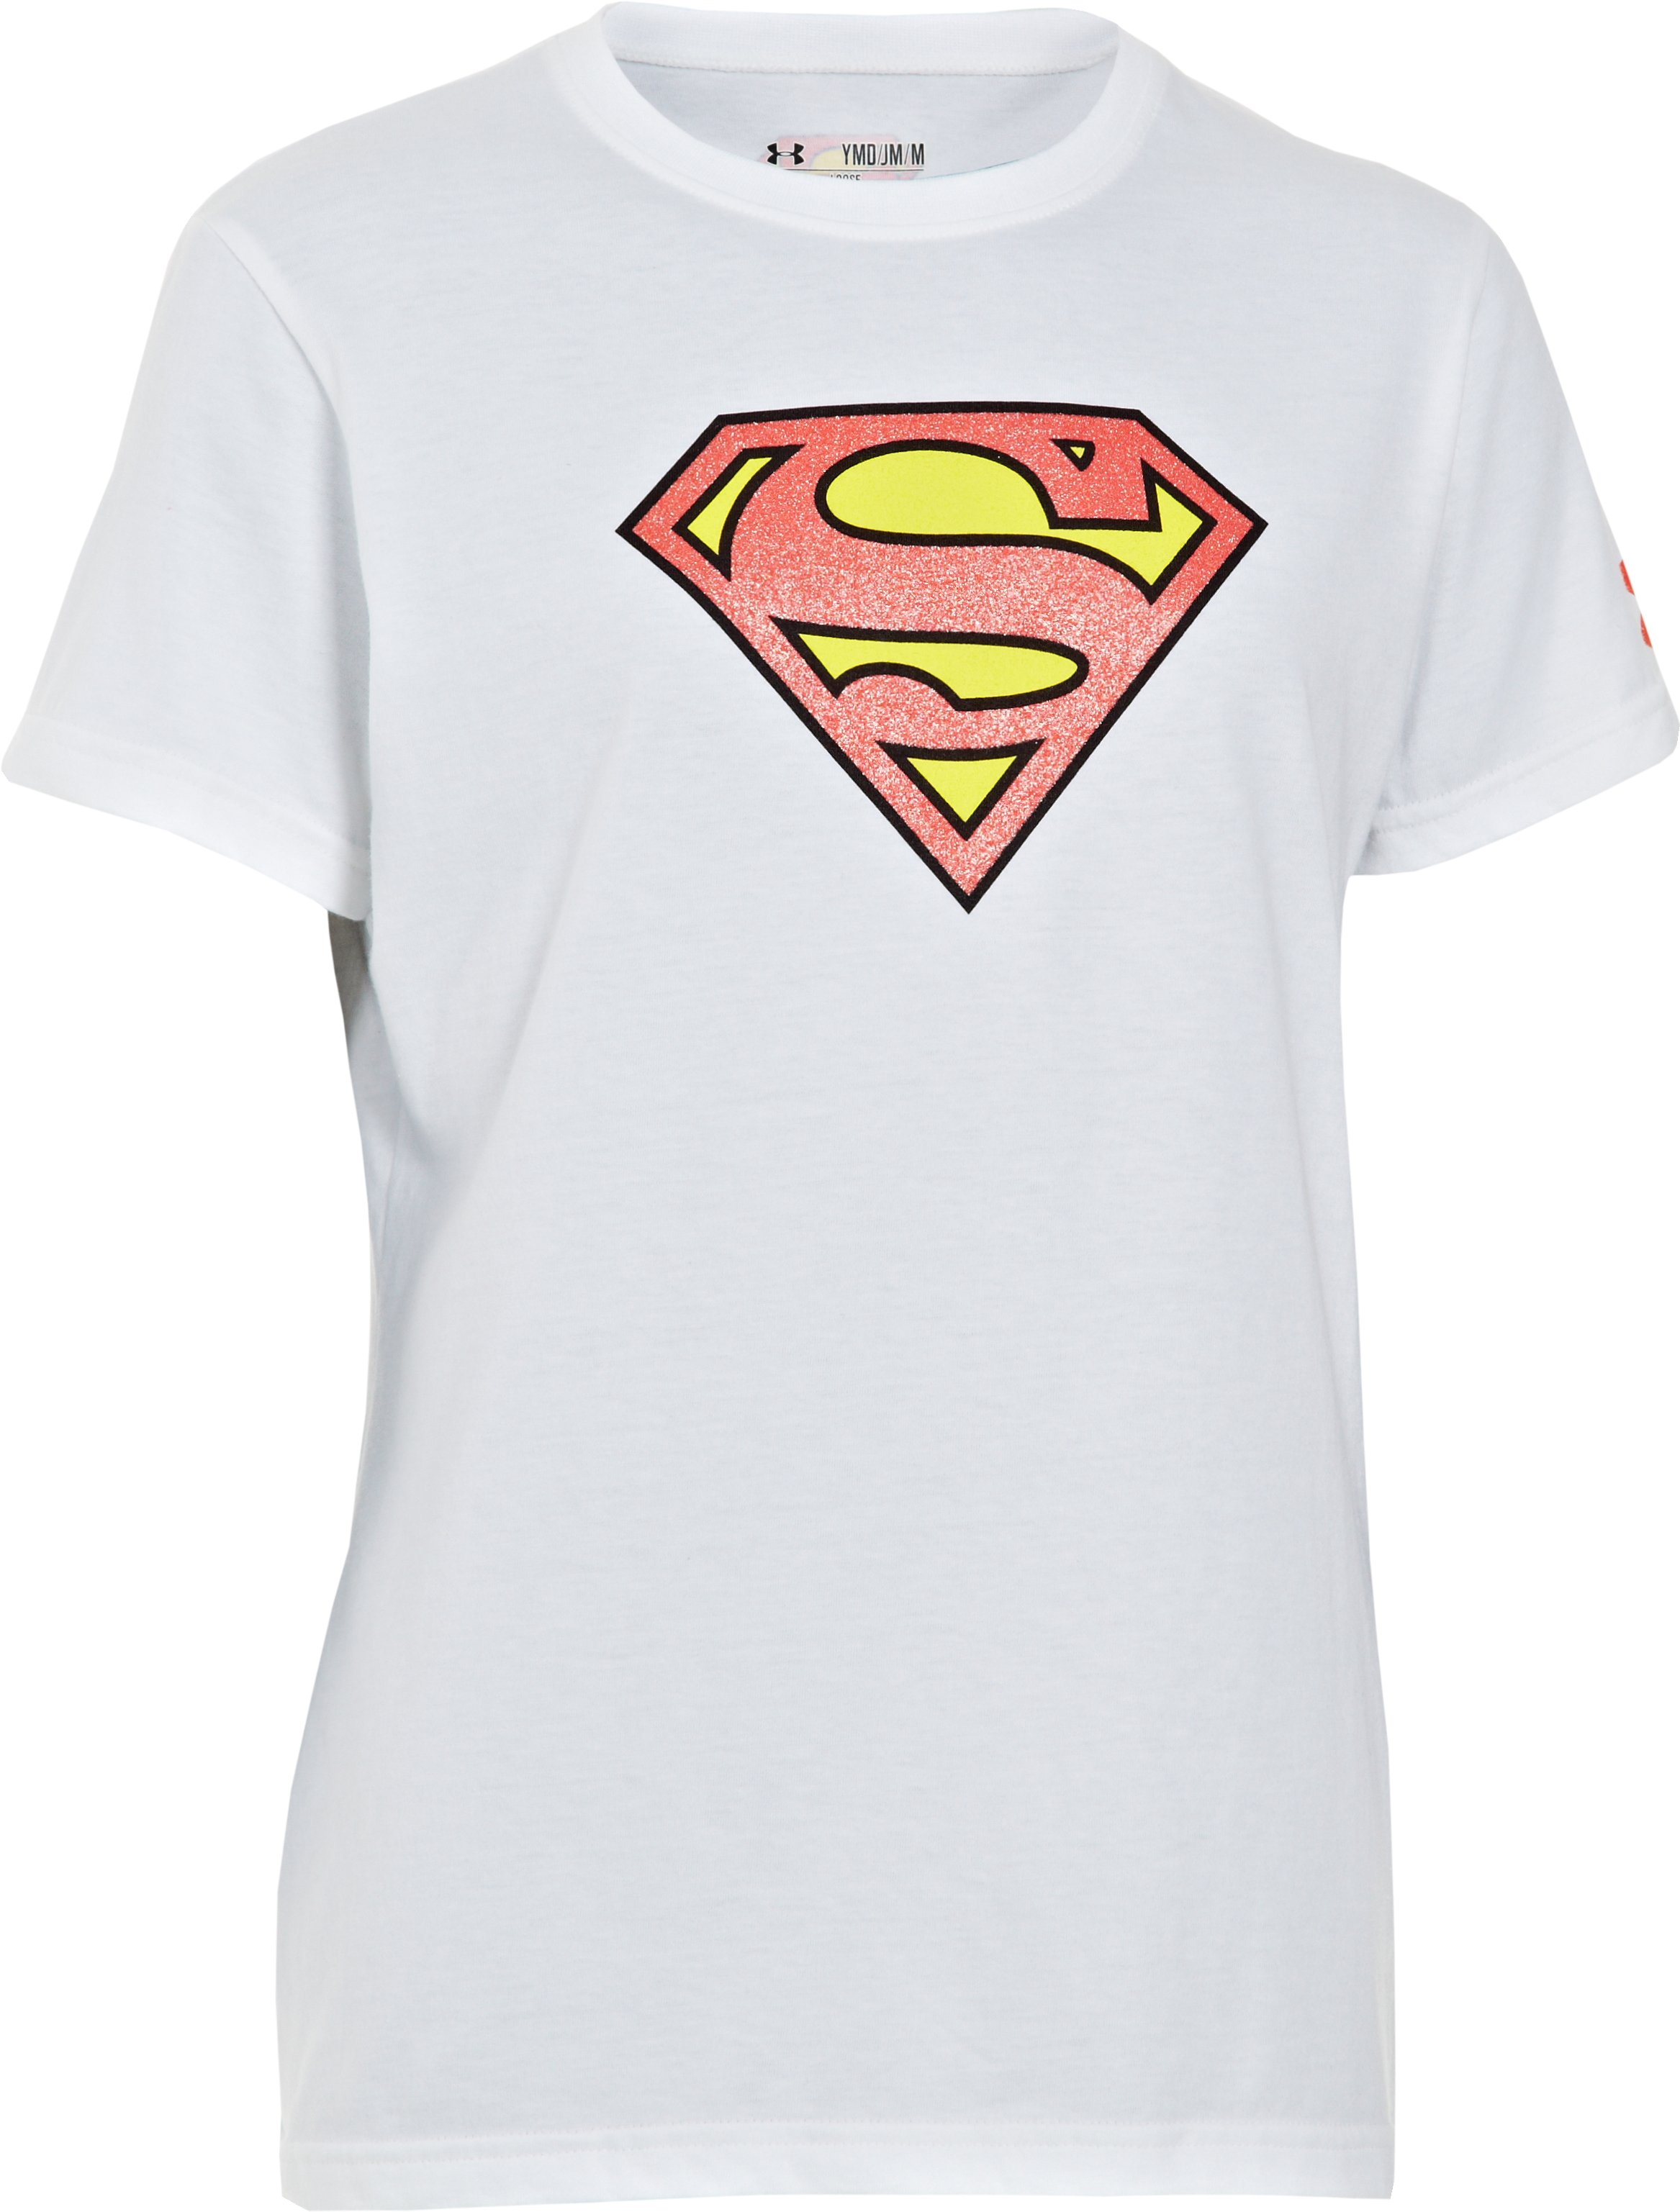 Girls' Under Armour® Alter Ego Supergirl T-Shirt, White